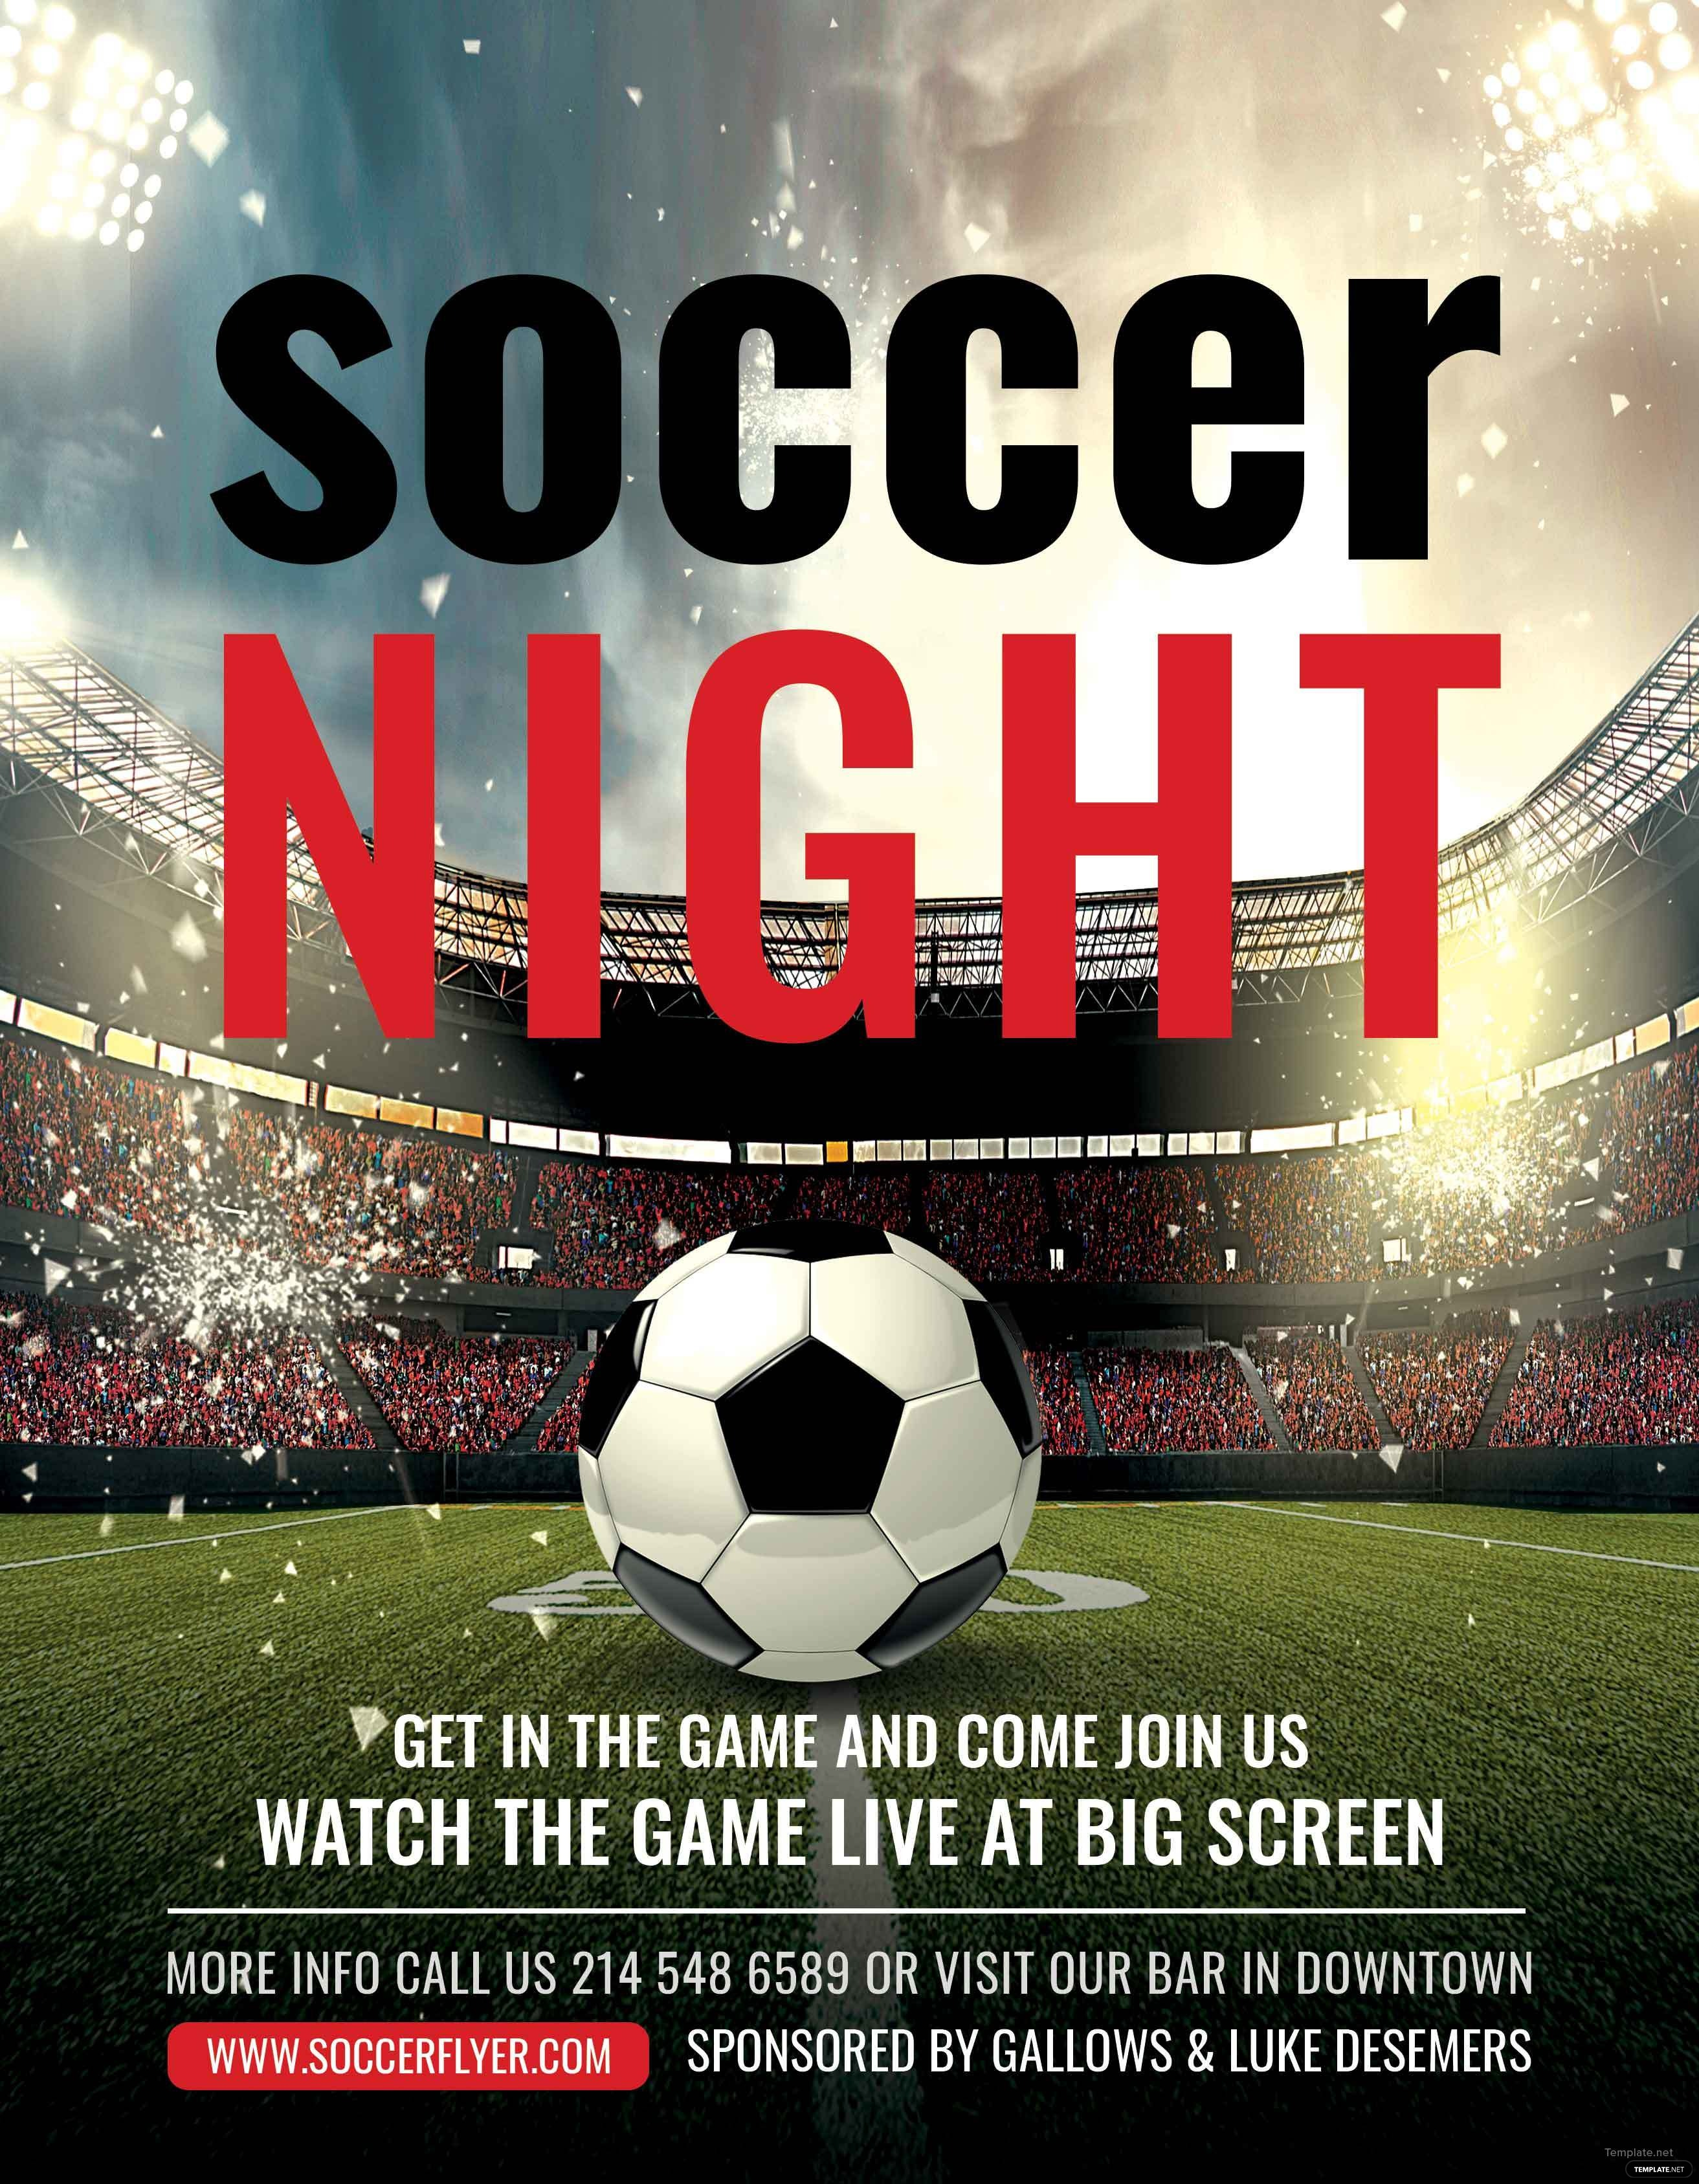 free soccer league night flyer template in adobe photoshop